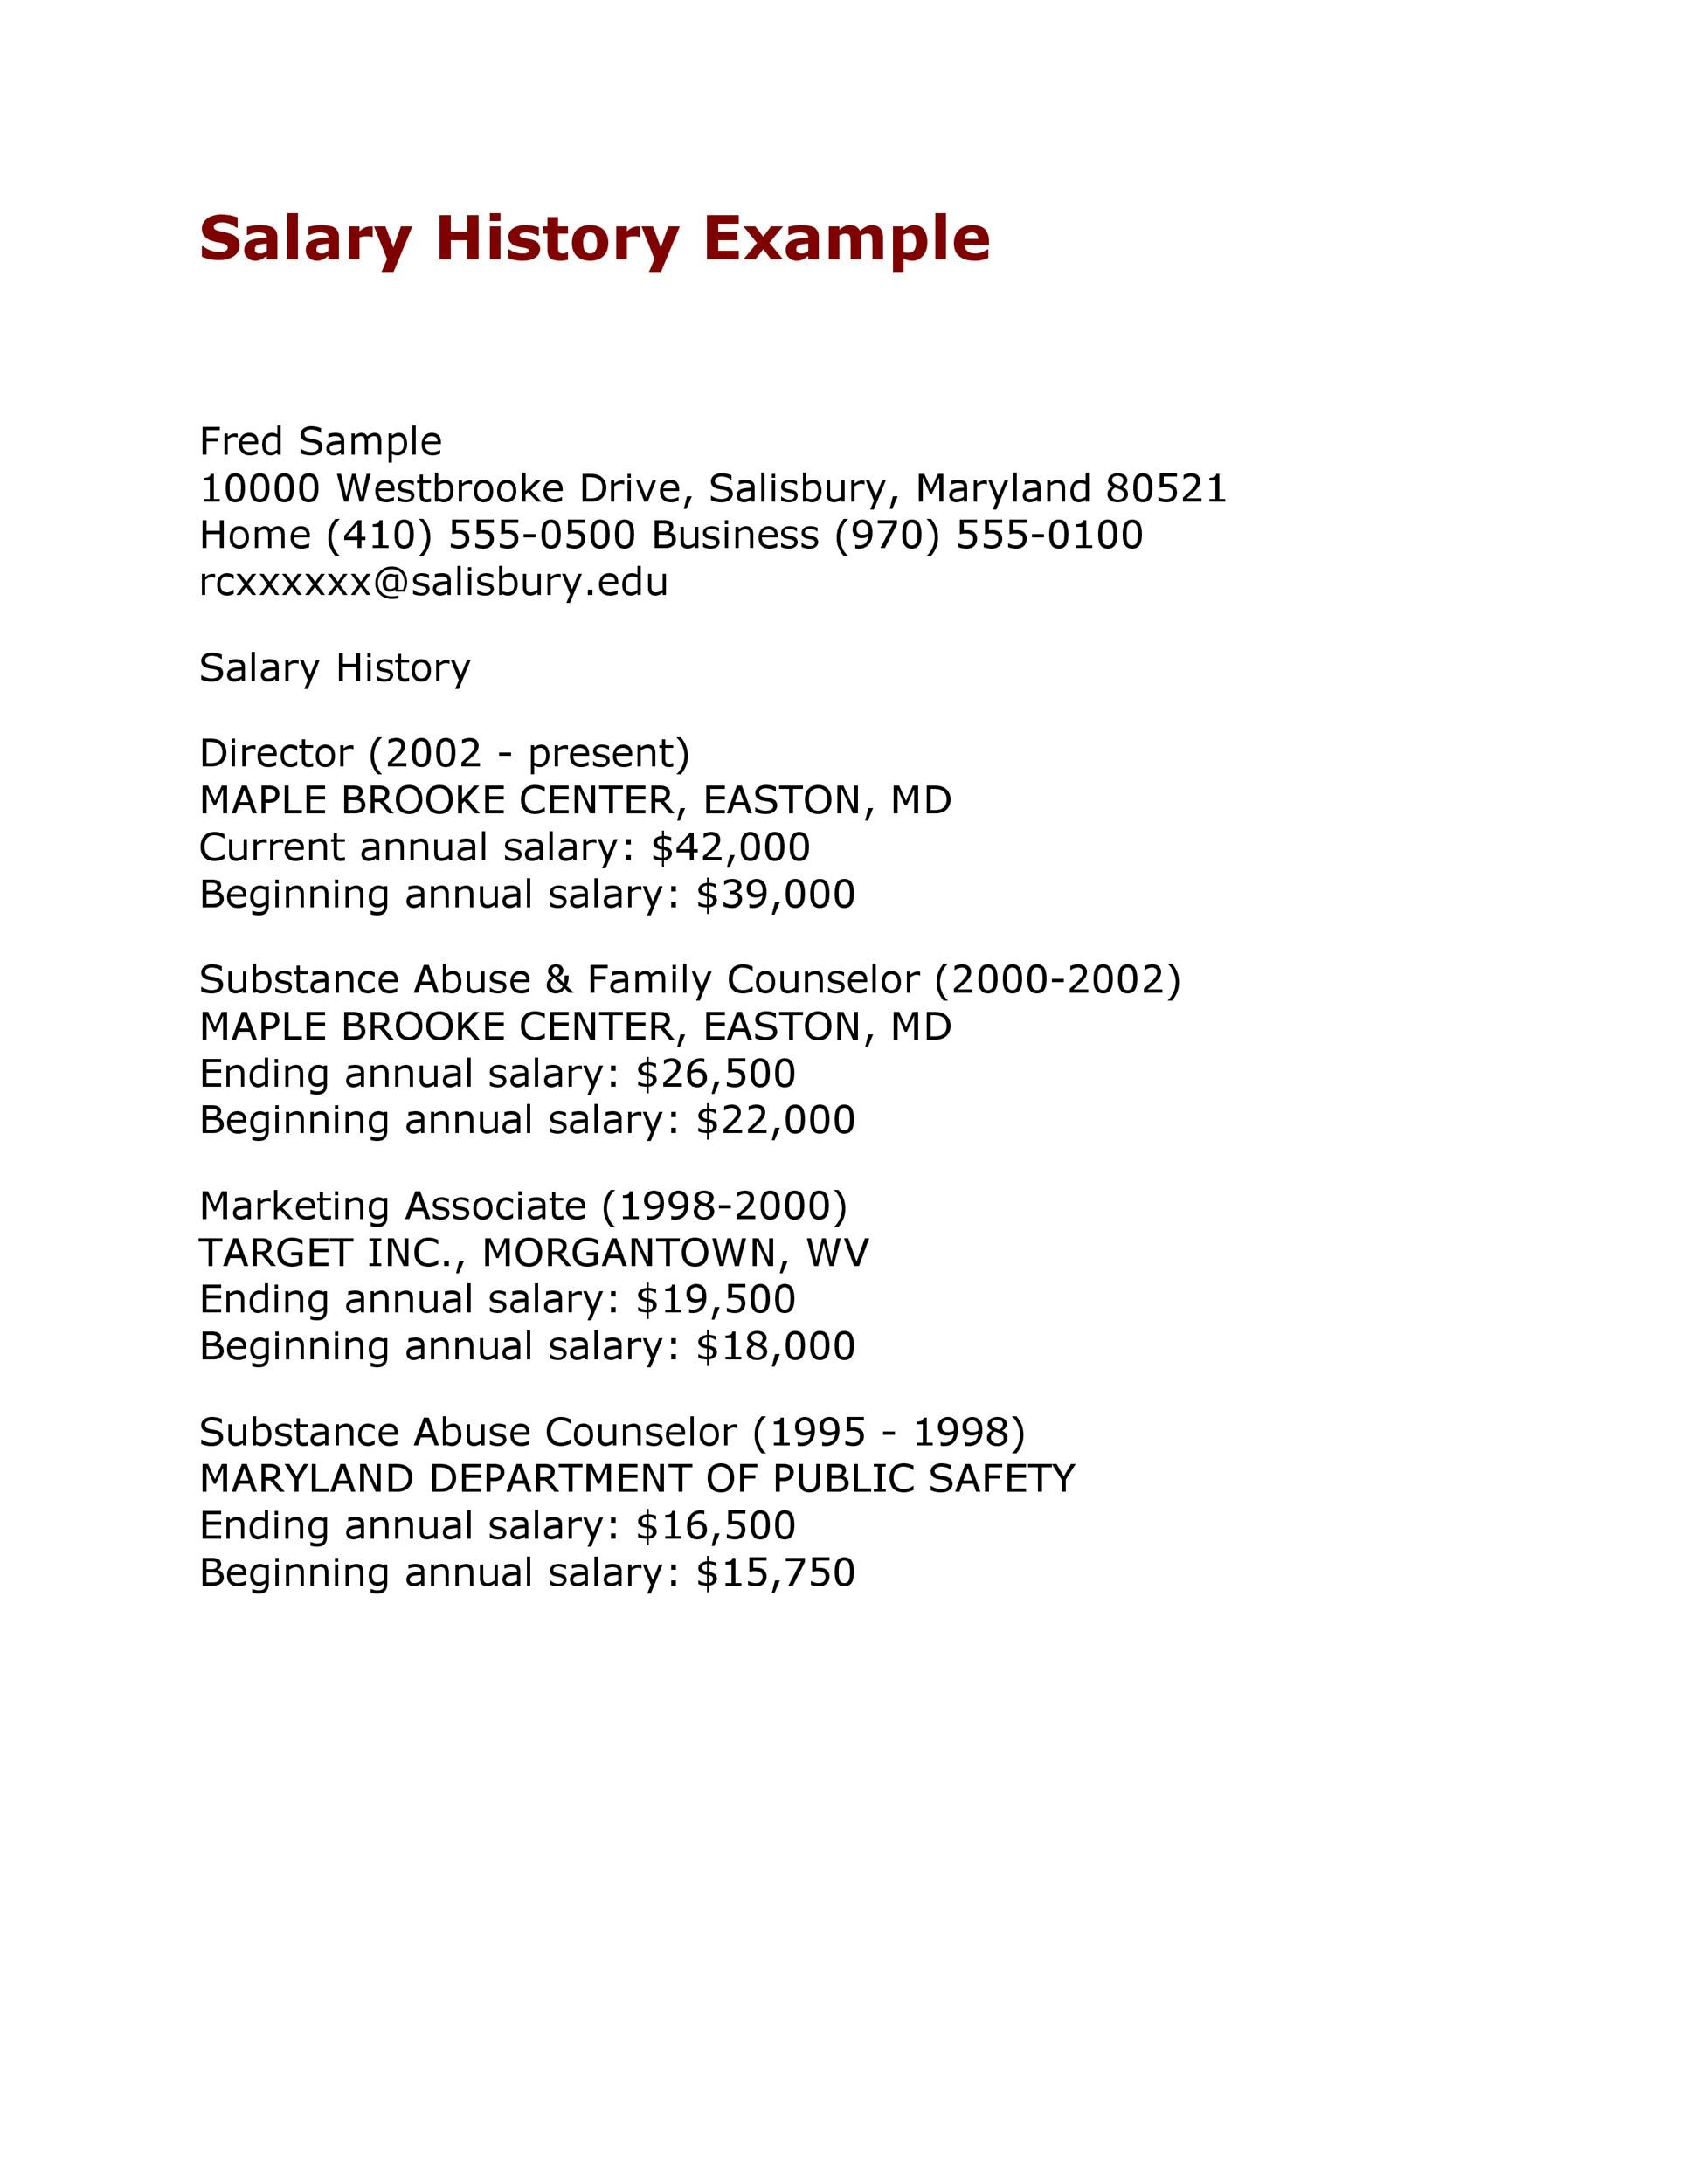 salary history template hourly - 19 great salary history templates samples template lab